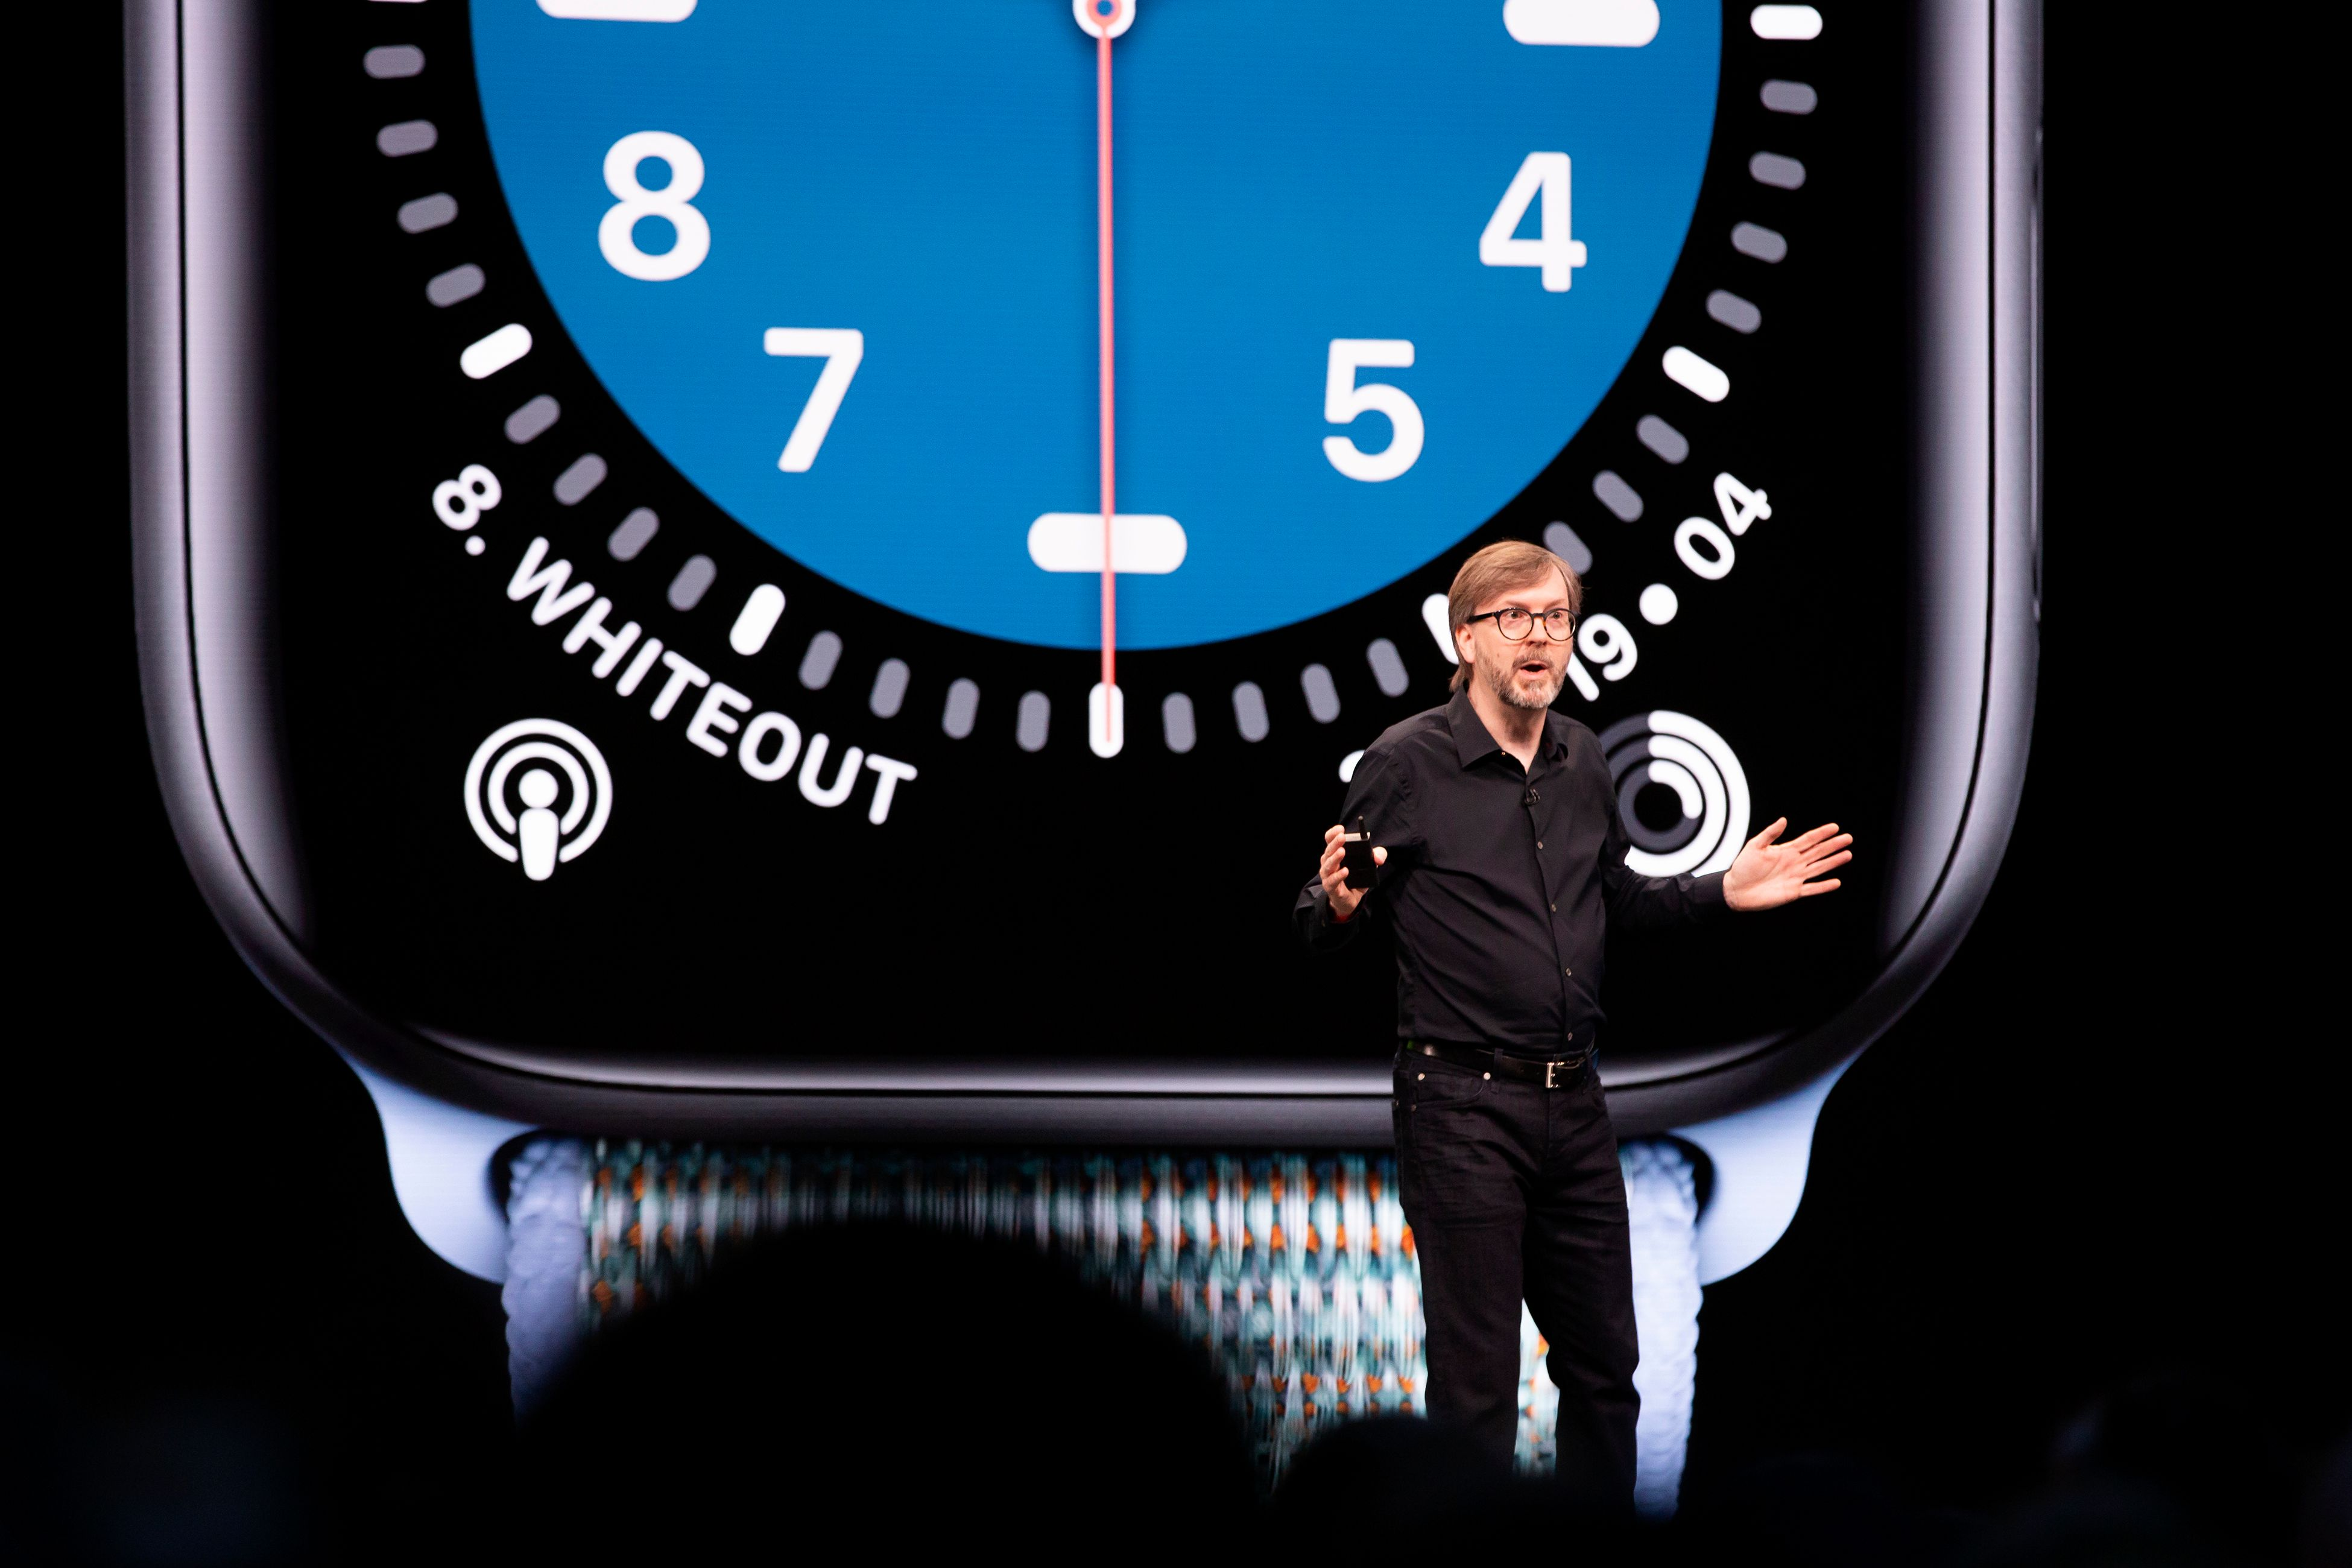 Apple's vice president of technology Kevin Lynch speaks during the keynote address during Apple's Worldwide Developer Conference (WWDC) in San Jose, California on June 3, 2019. (Photo by Brittany Hosea-Small / AFP)        (Photo credit should read BRITTANY HOSEA-SMALL/AFP via Getty Images)